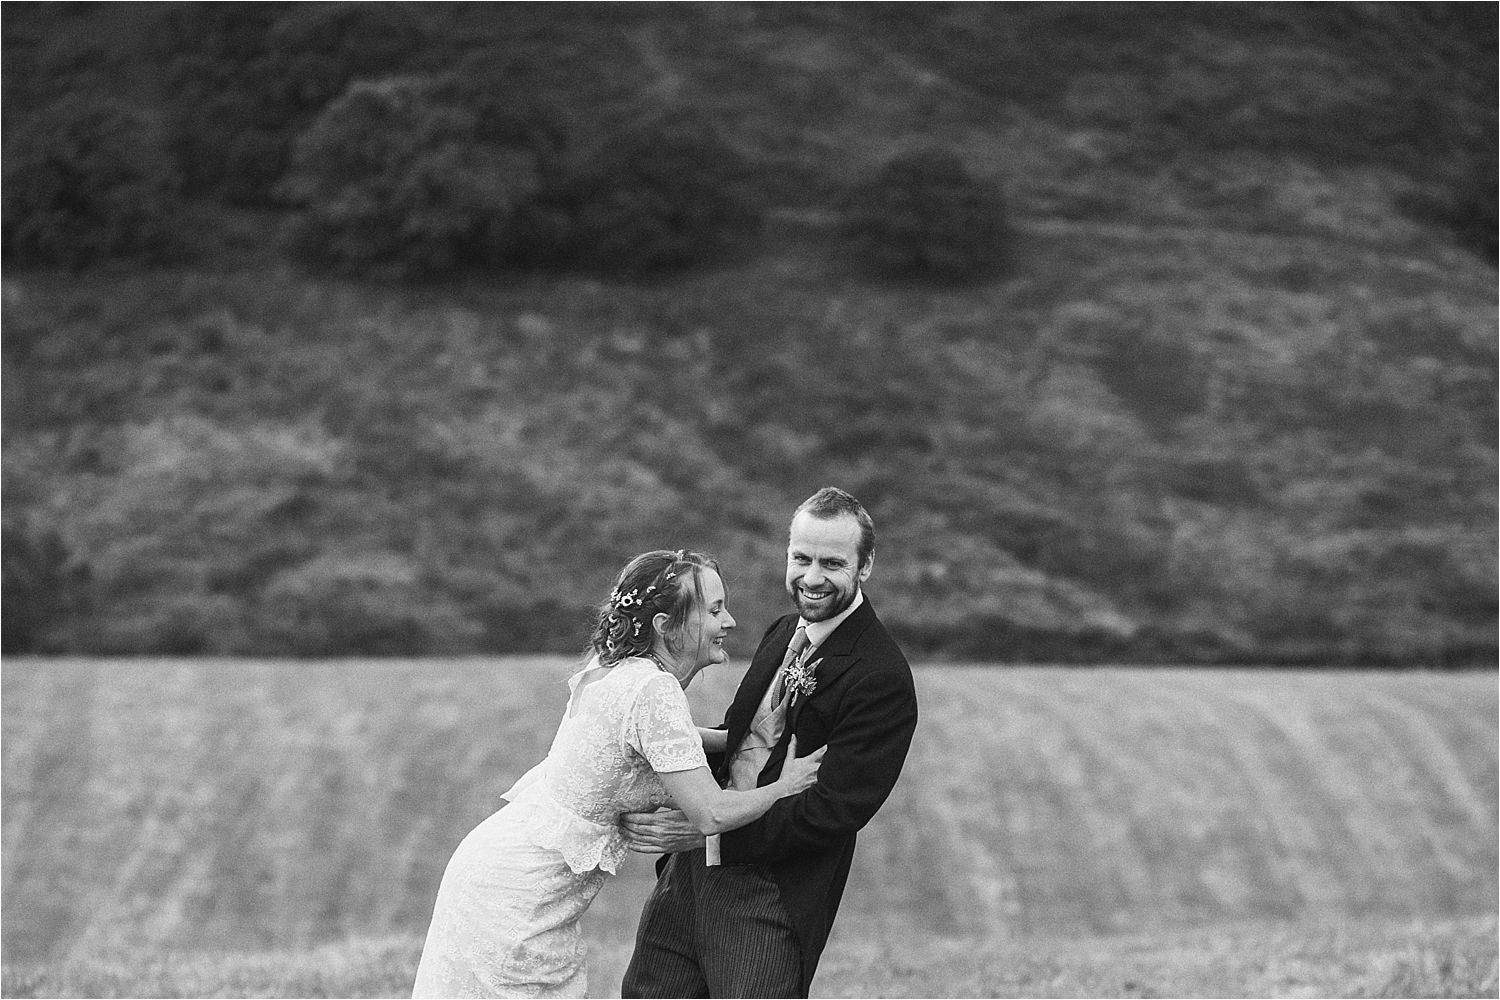 Bride and groom in rural North West wedding, Glossop